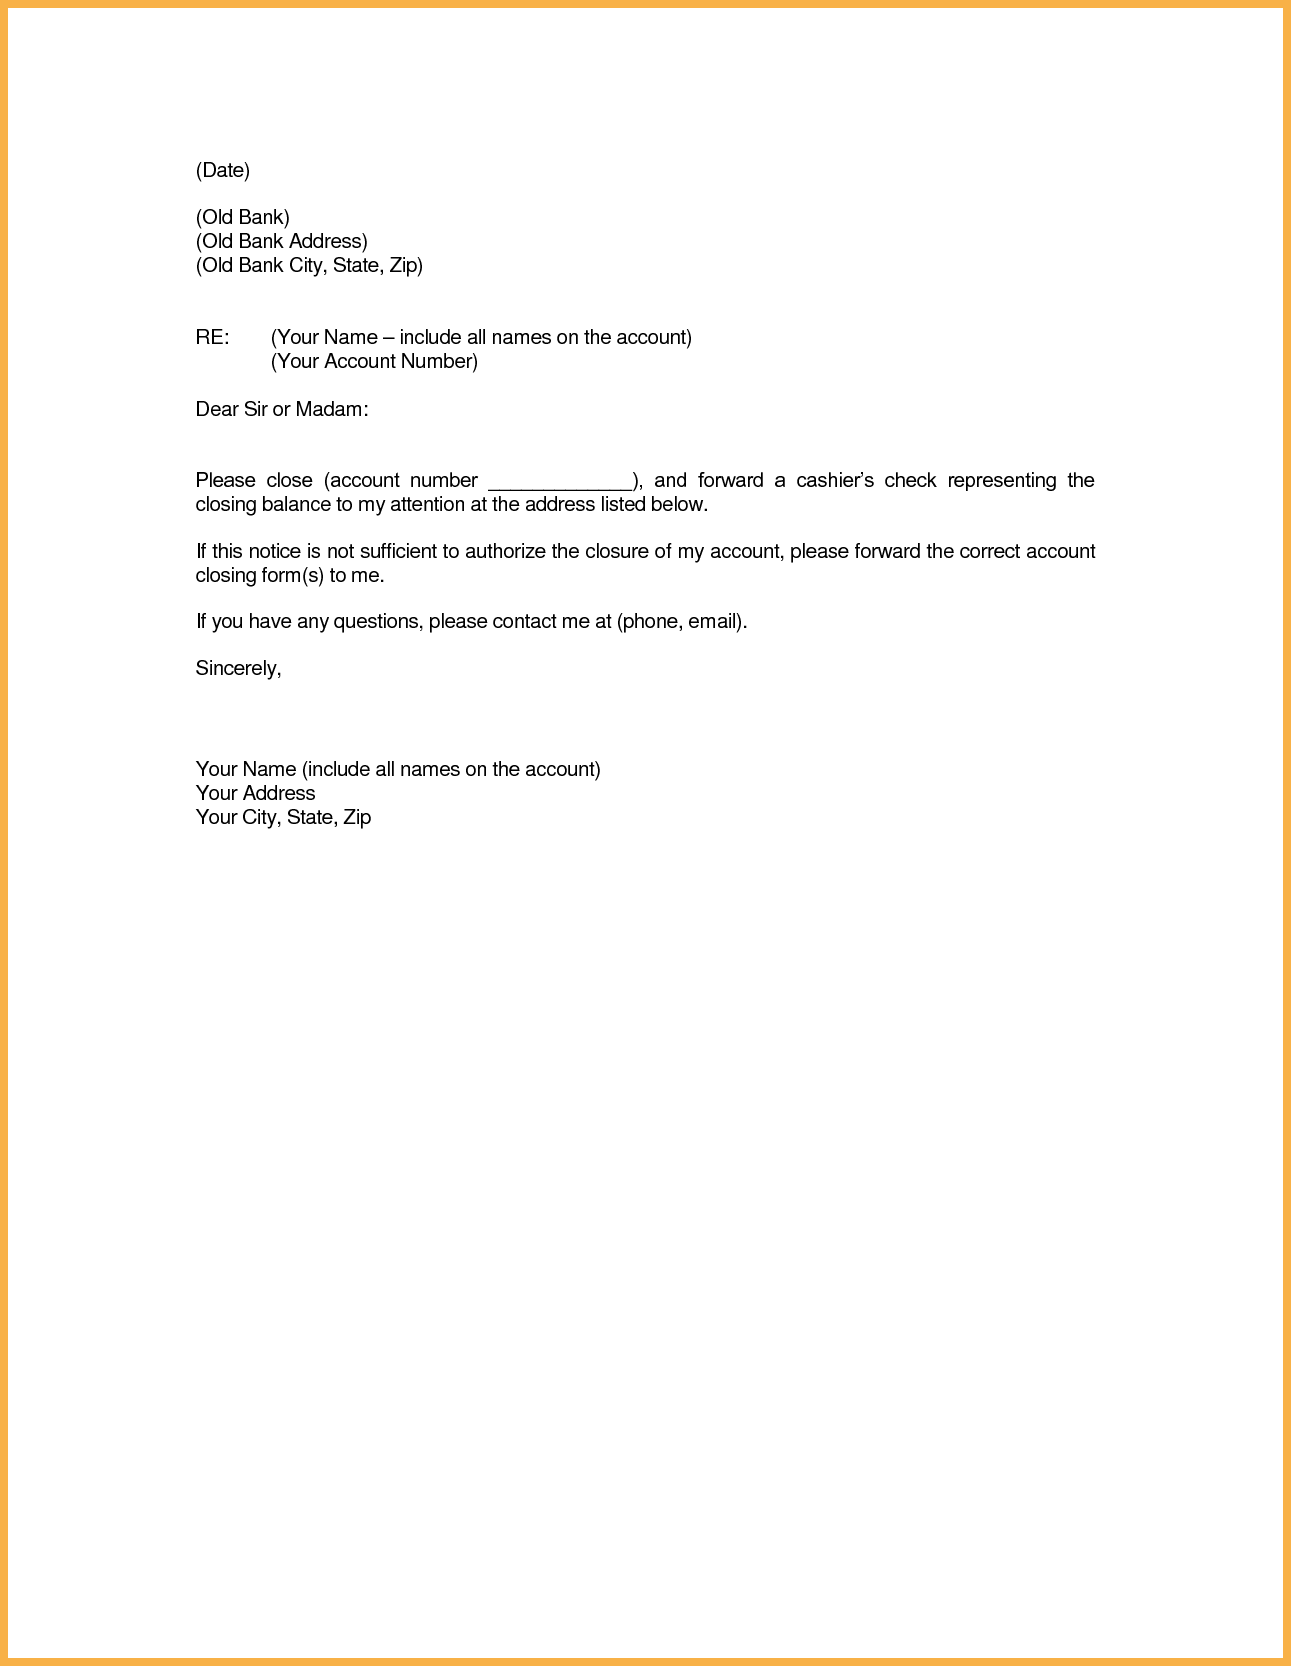 Valid Job Letter Template For Bank You Can Download For Full Letter Resume Template Here Https Www Newspb Org Job Let Job Letter Letter Templates Lettering